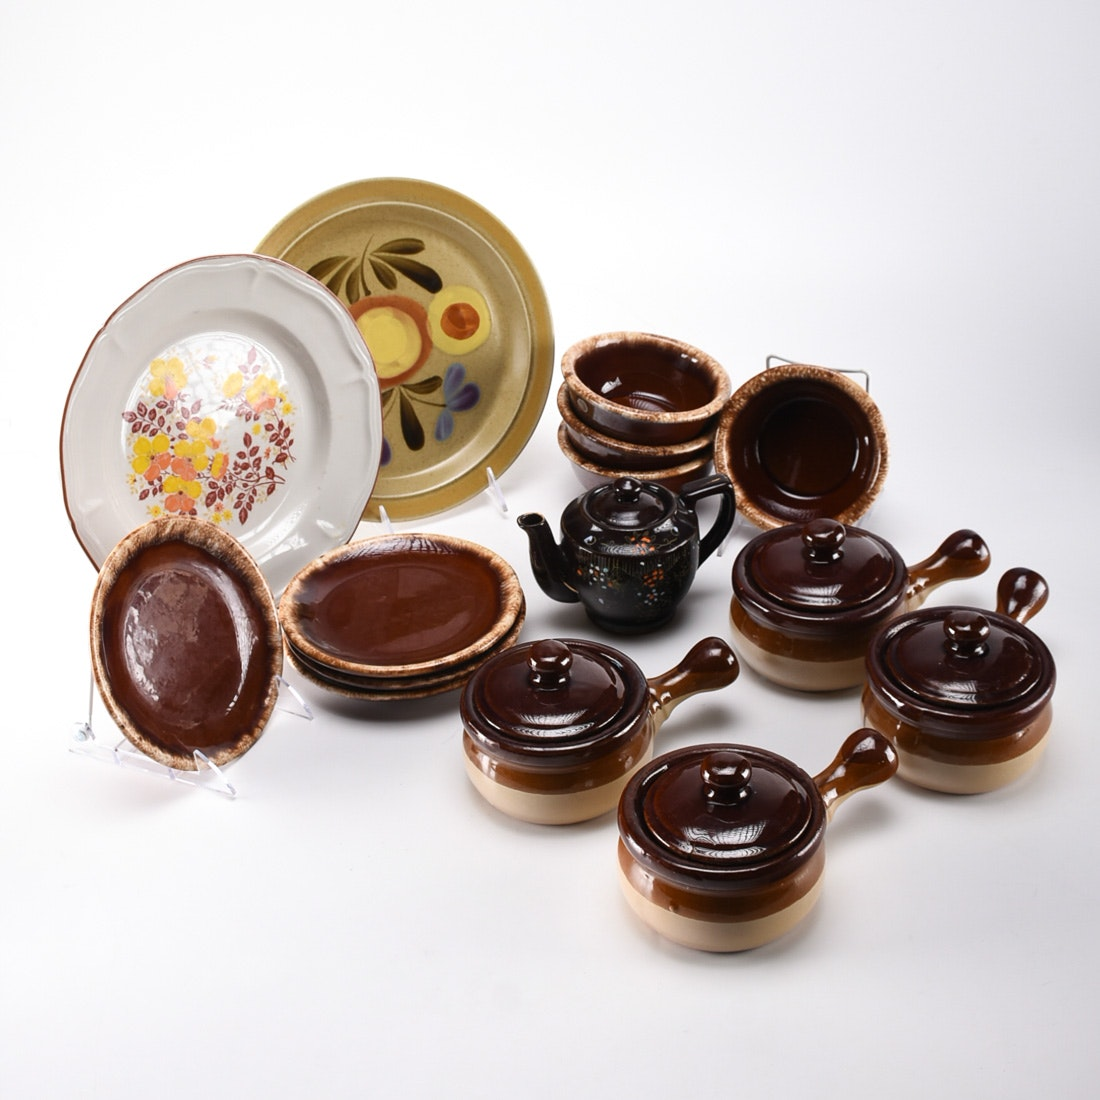 Collection of 1970s Era Dishes Including Hull Brown Drip Pottery and Onion Soup Bowls